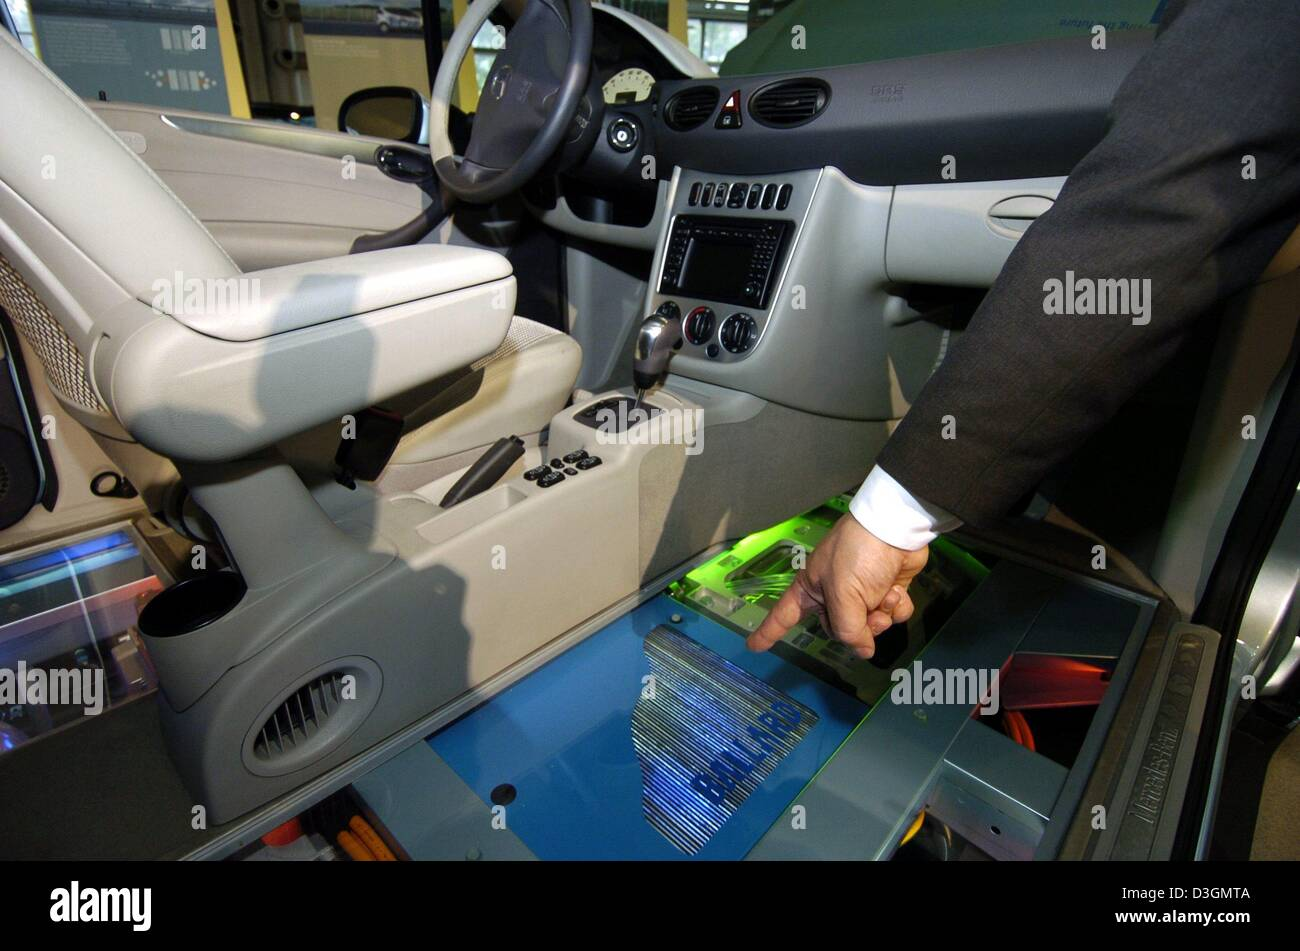 (dpa) - A DaimlerChrysler employee points out the fuel cells in a fuel cell powered 'F-Cell' car which stands - Stock Image